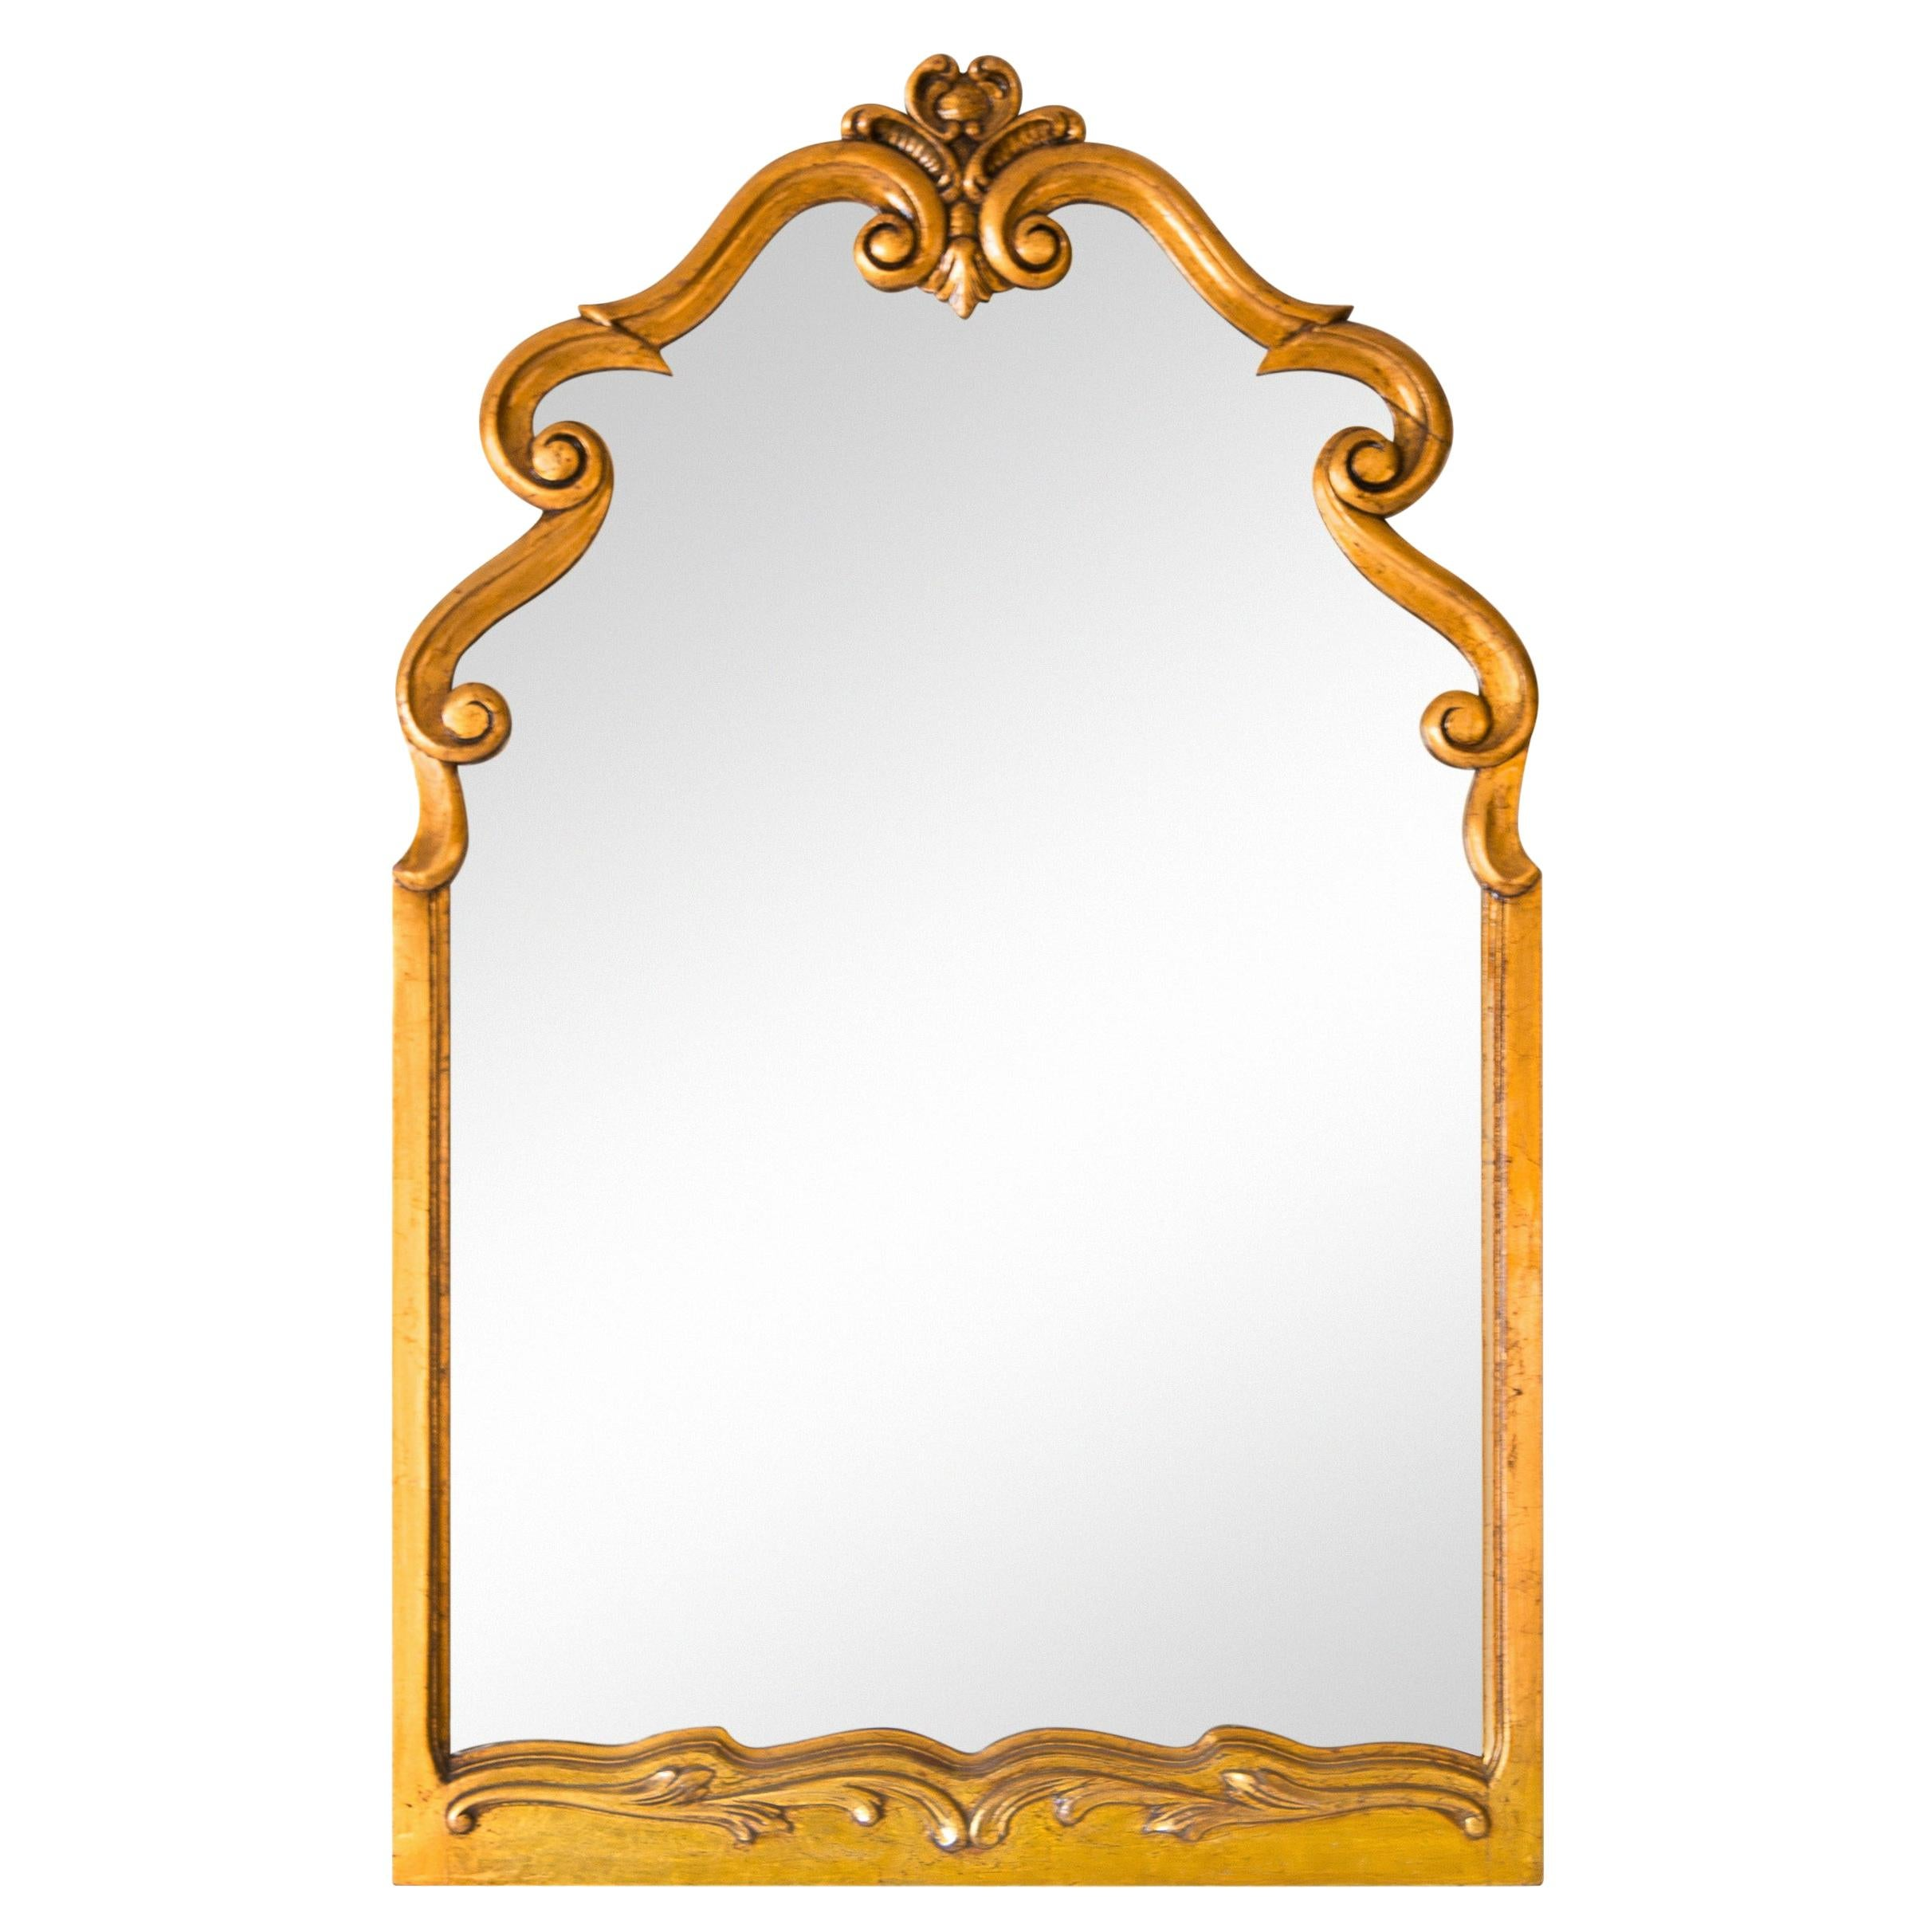 Large Scrolled Arch Gold Giltwood Mirror, 1950s